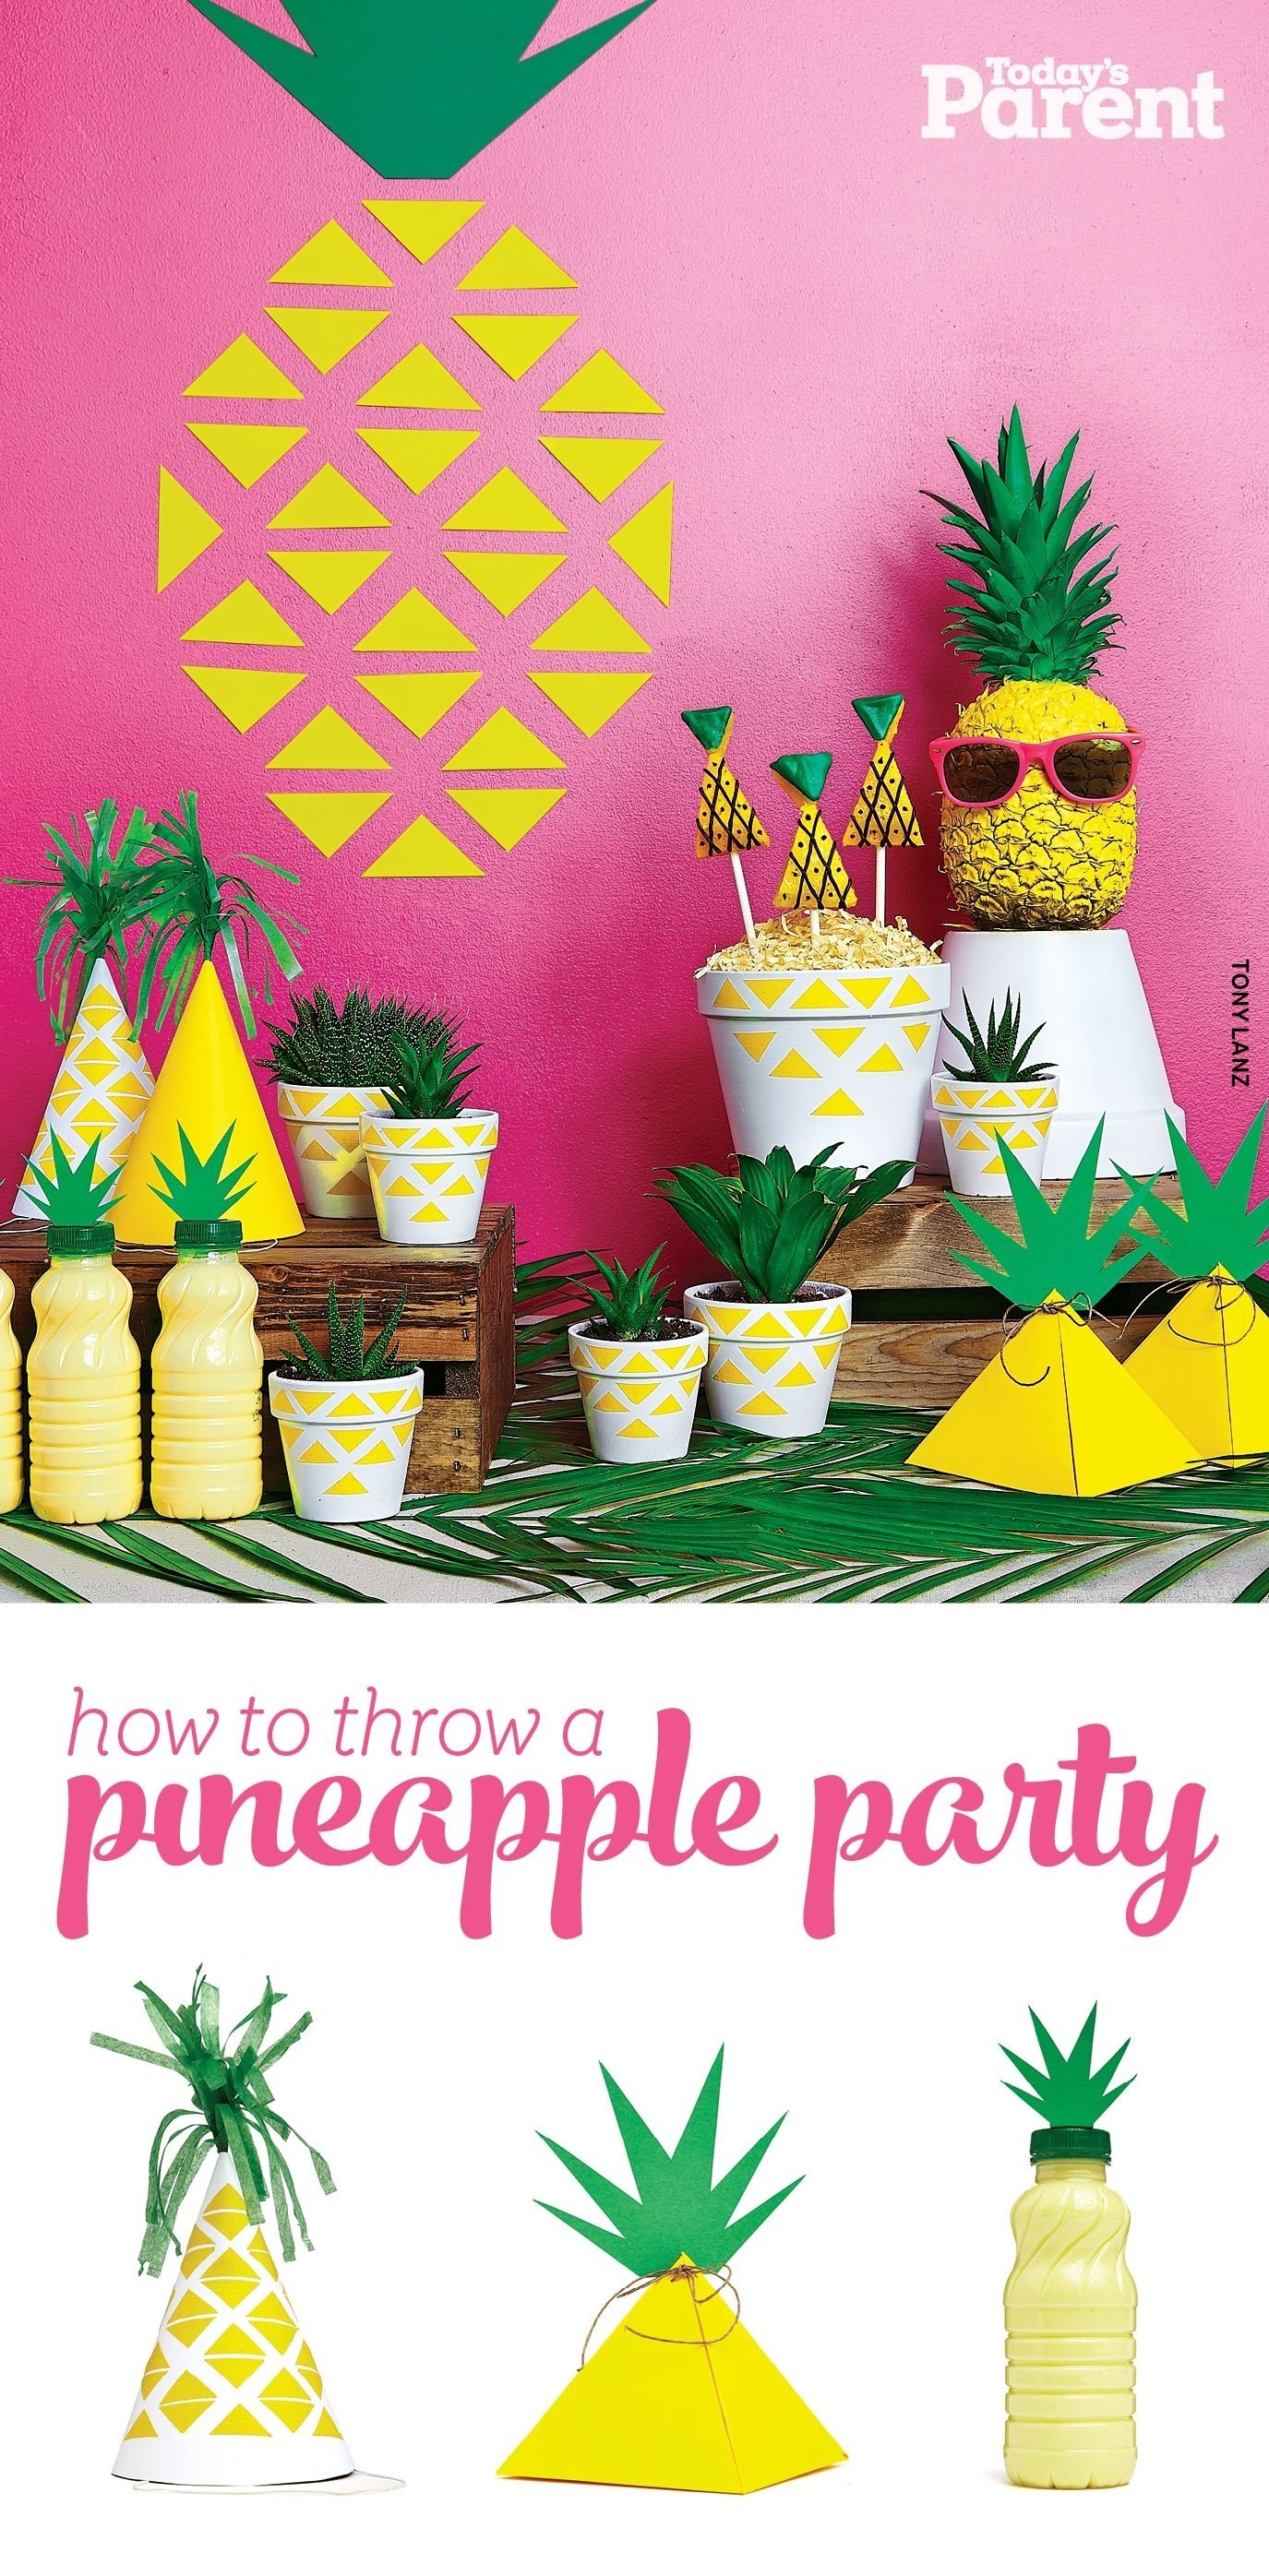 10 Lovable Summer Party Ideas For Adults how to throw a pineapple party sunnies winter and birthdays 2020